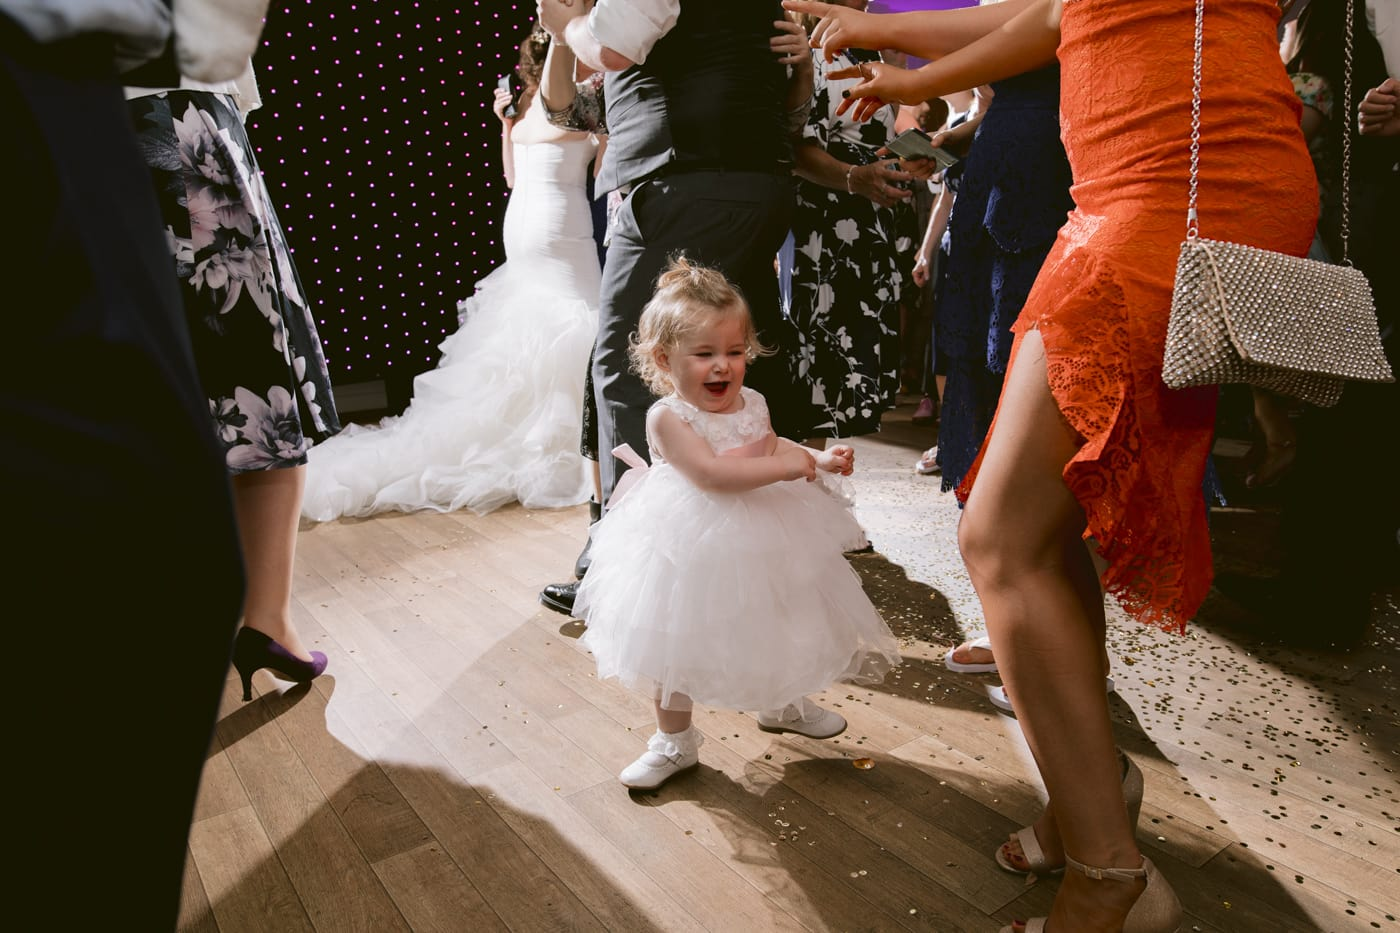 Little Bridesmaid Dancing at The Reception Portrait